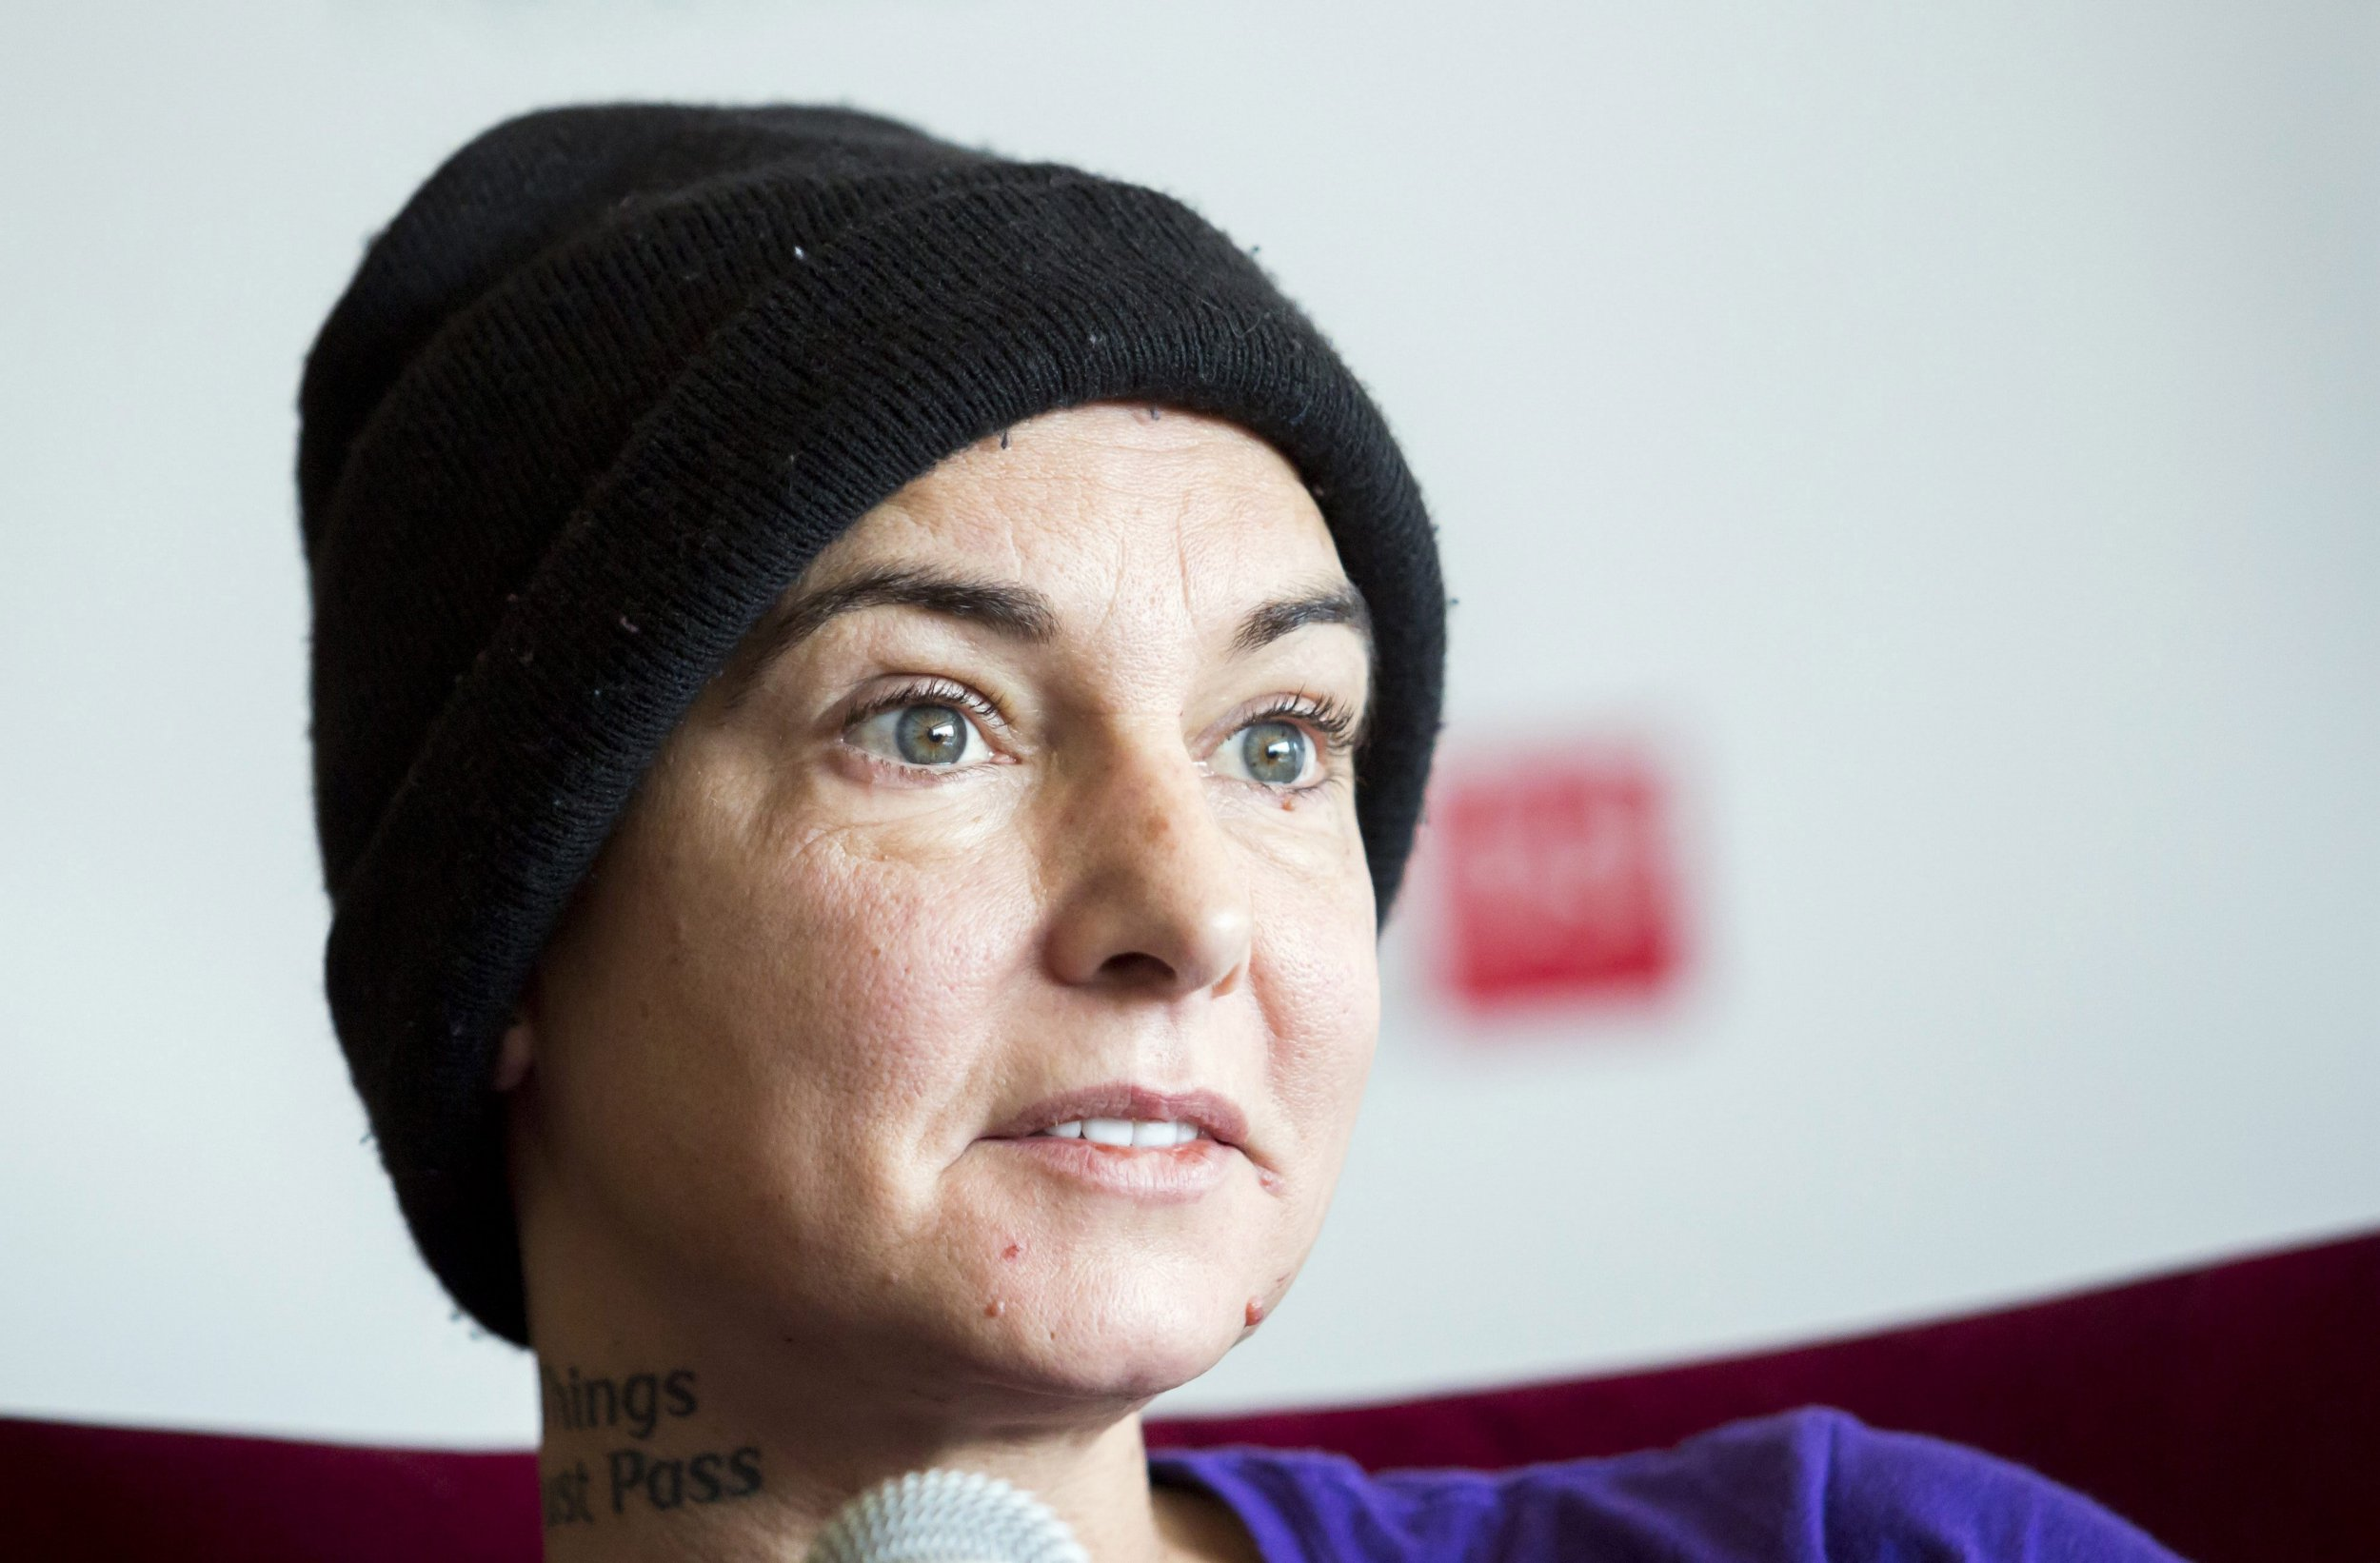 Sinead O'Connor reveals son, 14, has been 'missing for two days'